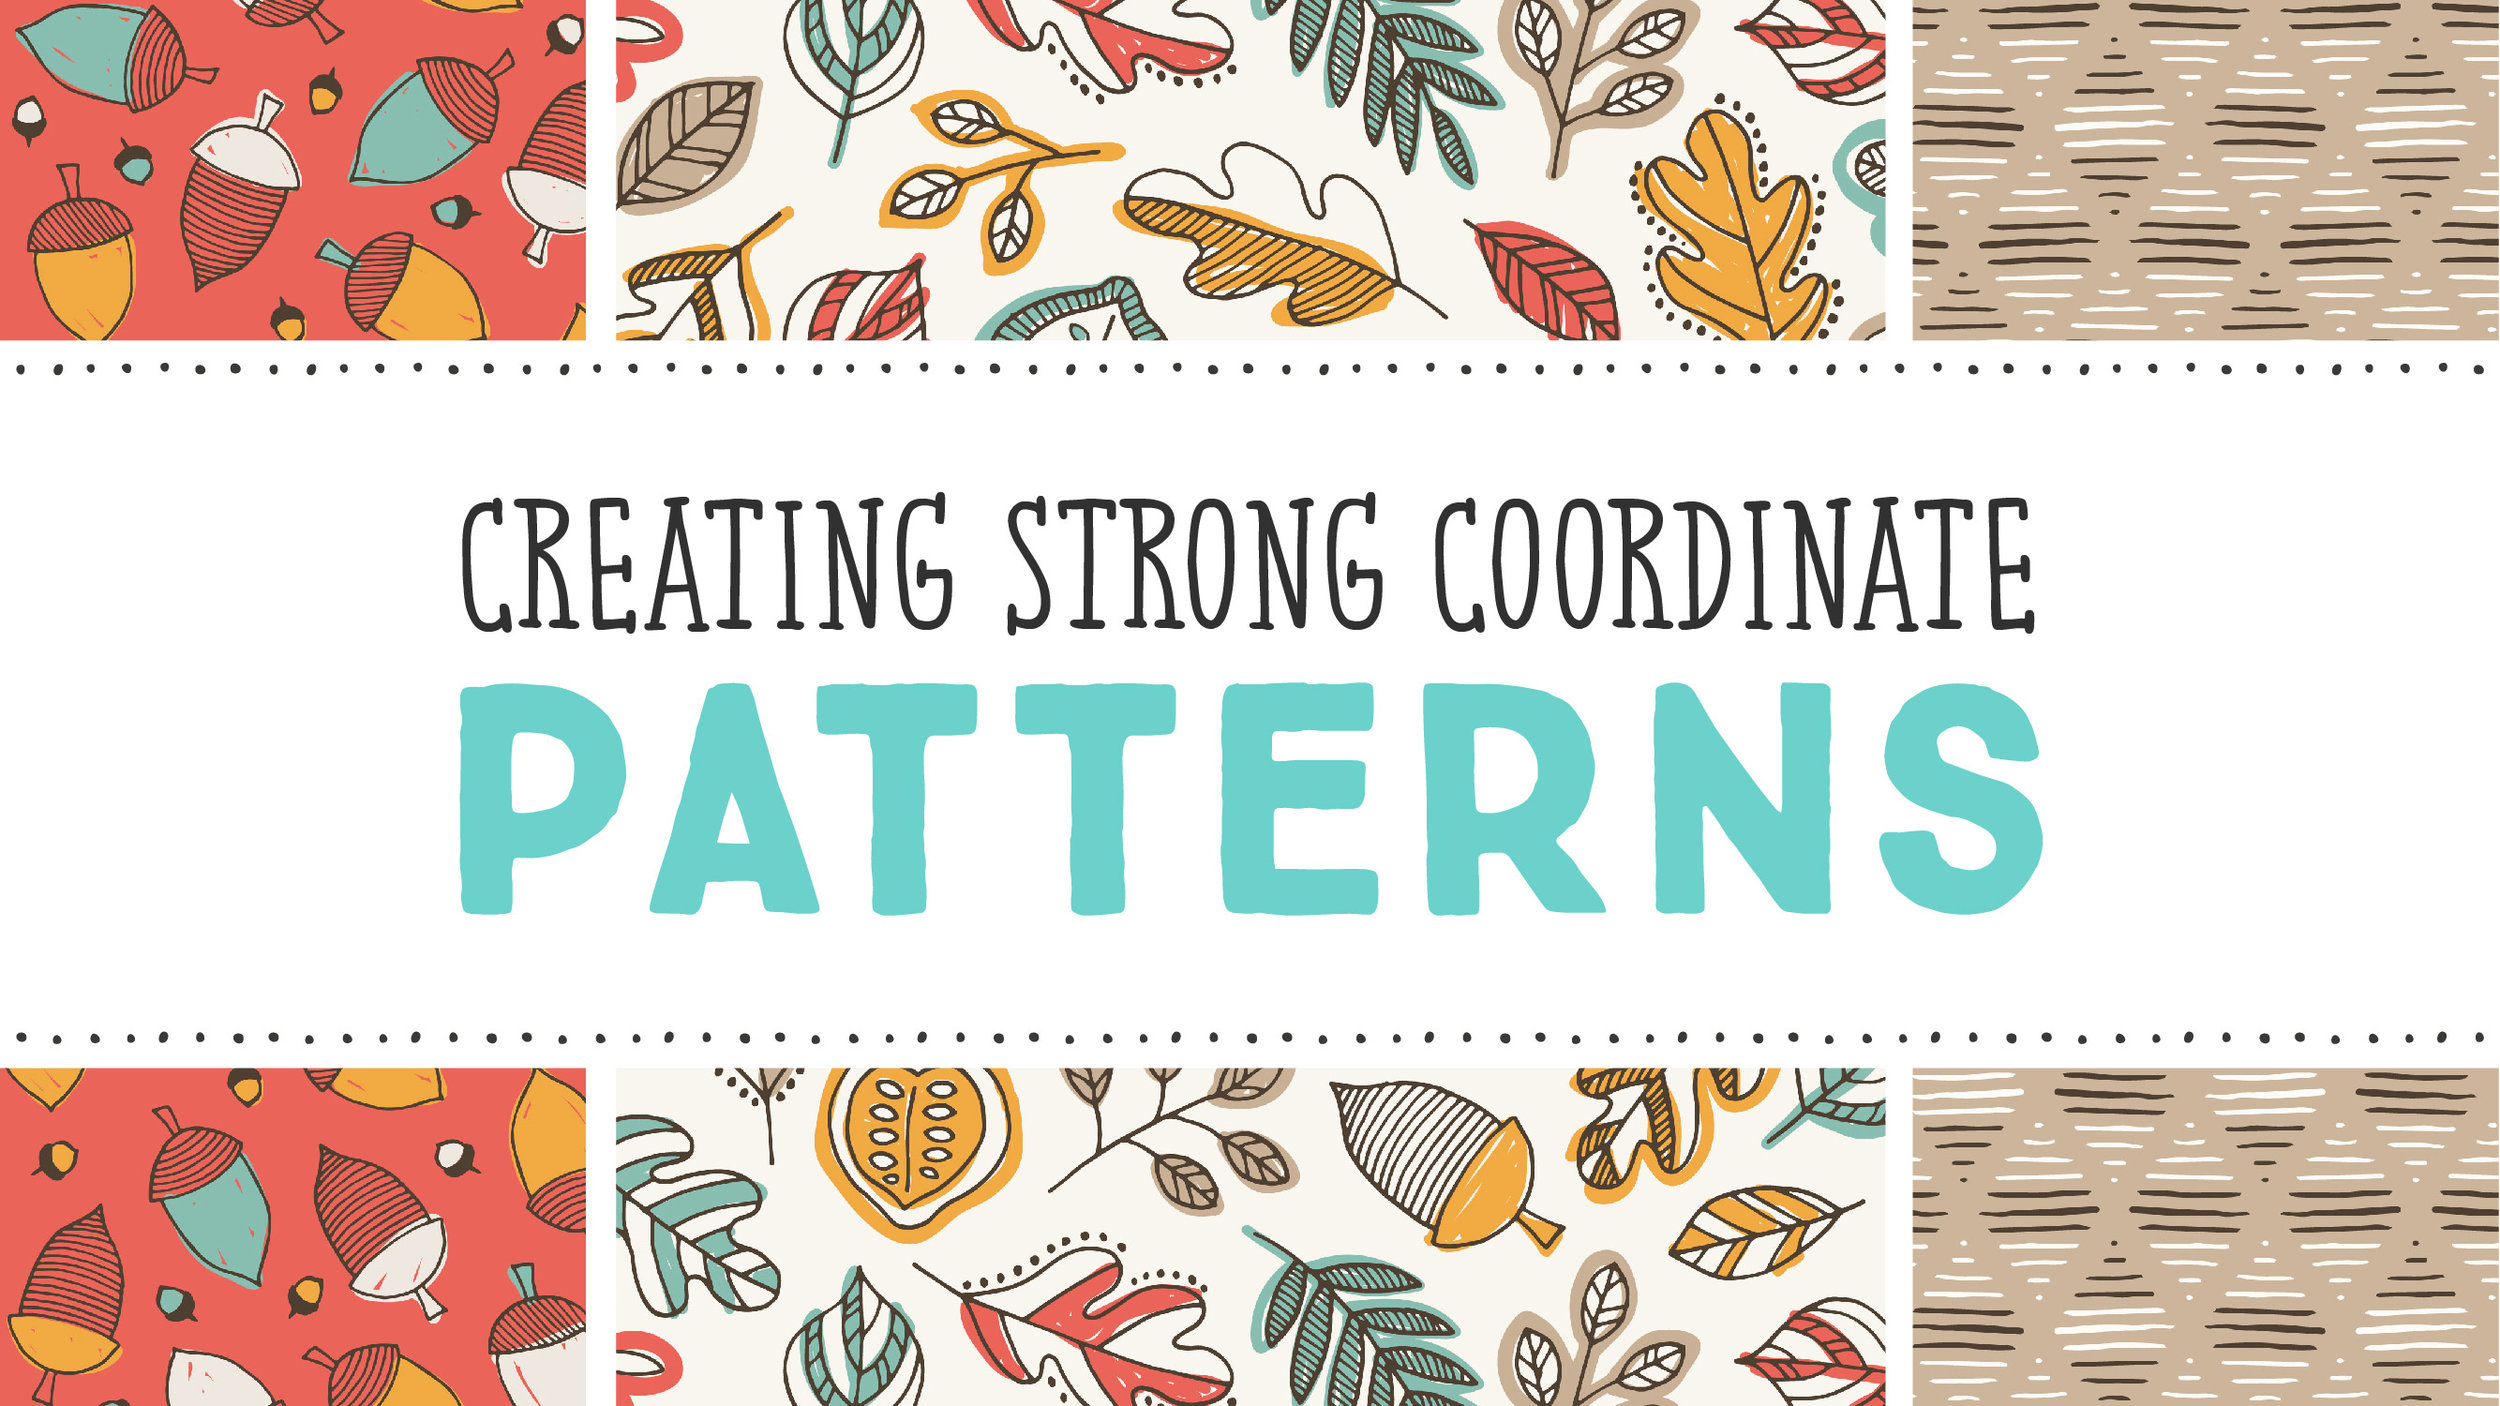 Surface Design Strategies: How to Create Strong Coordinate Patterns | A Mini Pattern Design Class by Shannon McNab